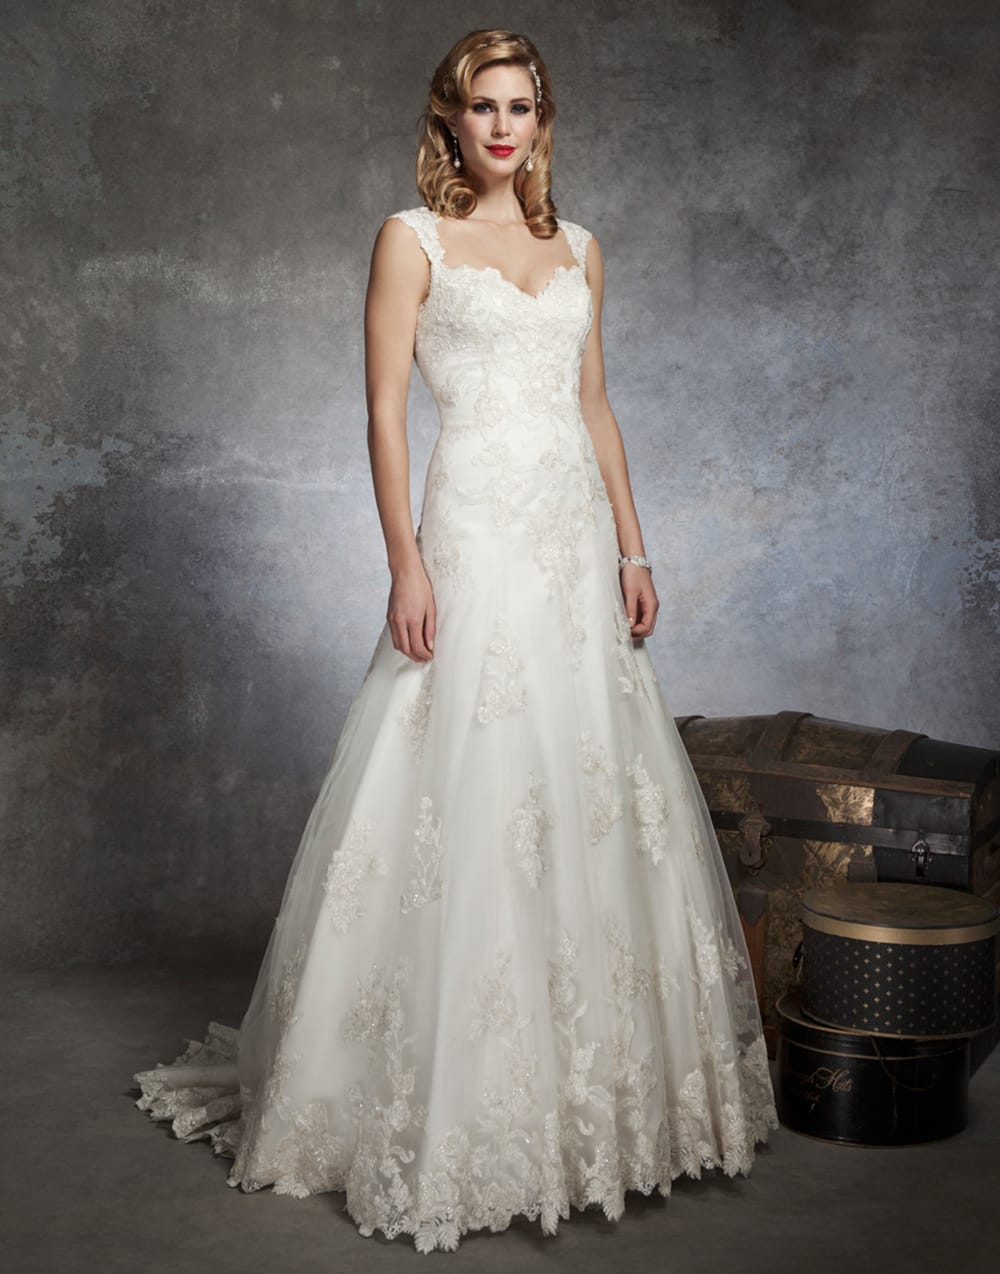 Justin alexander 8653 sell my wedding dress online for Sell wedding dress online